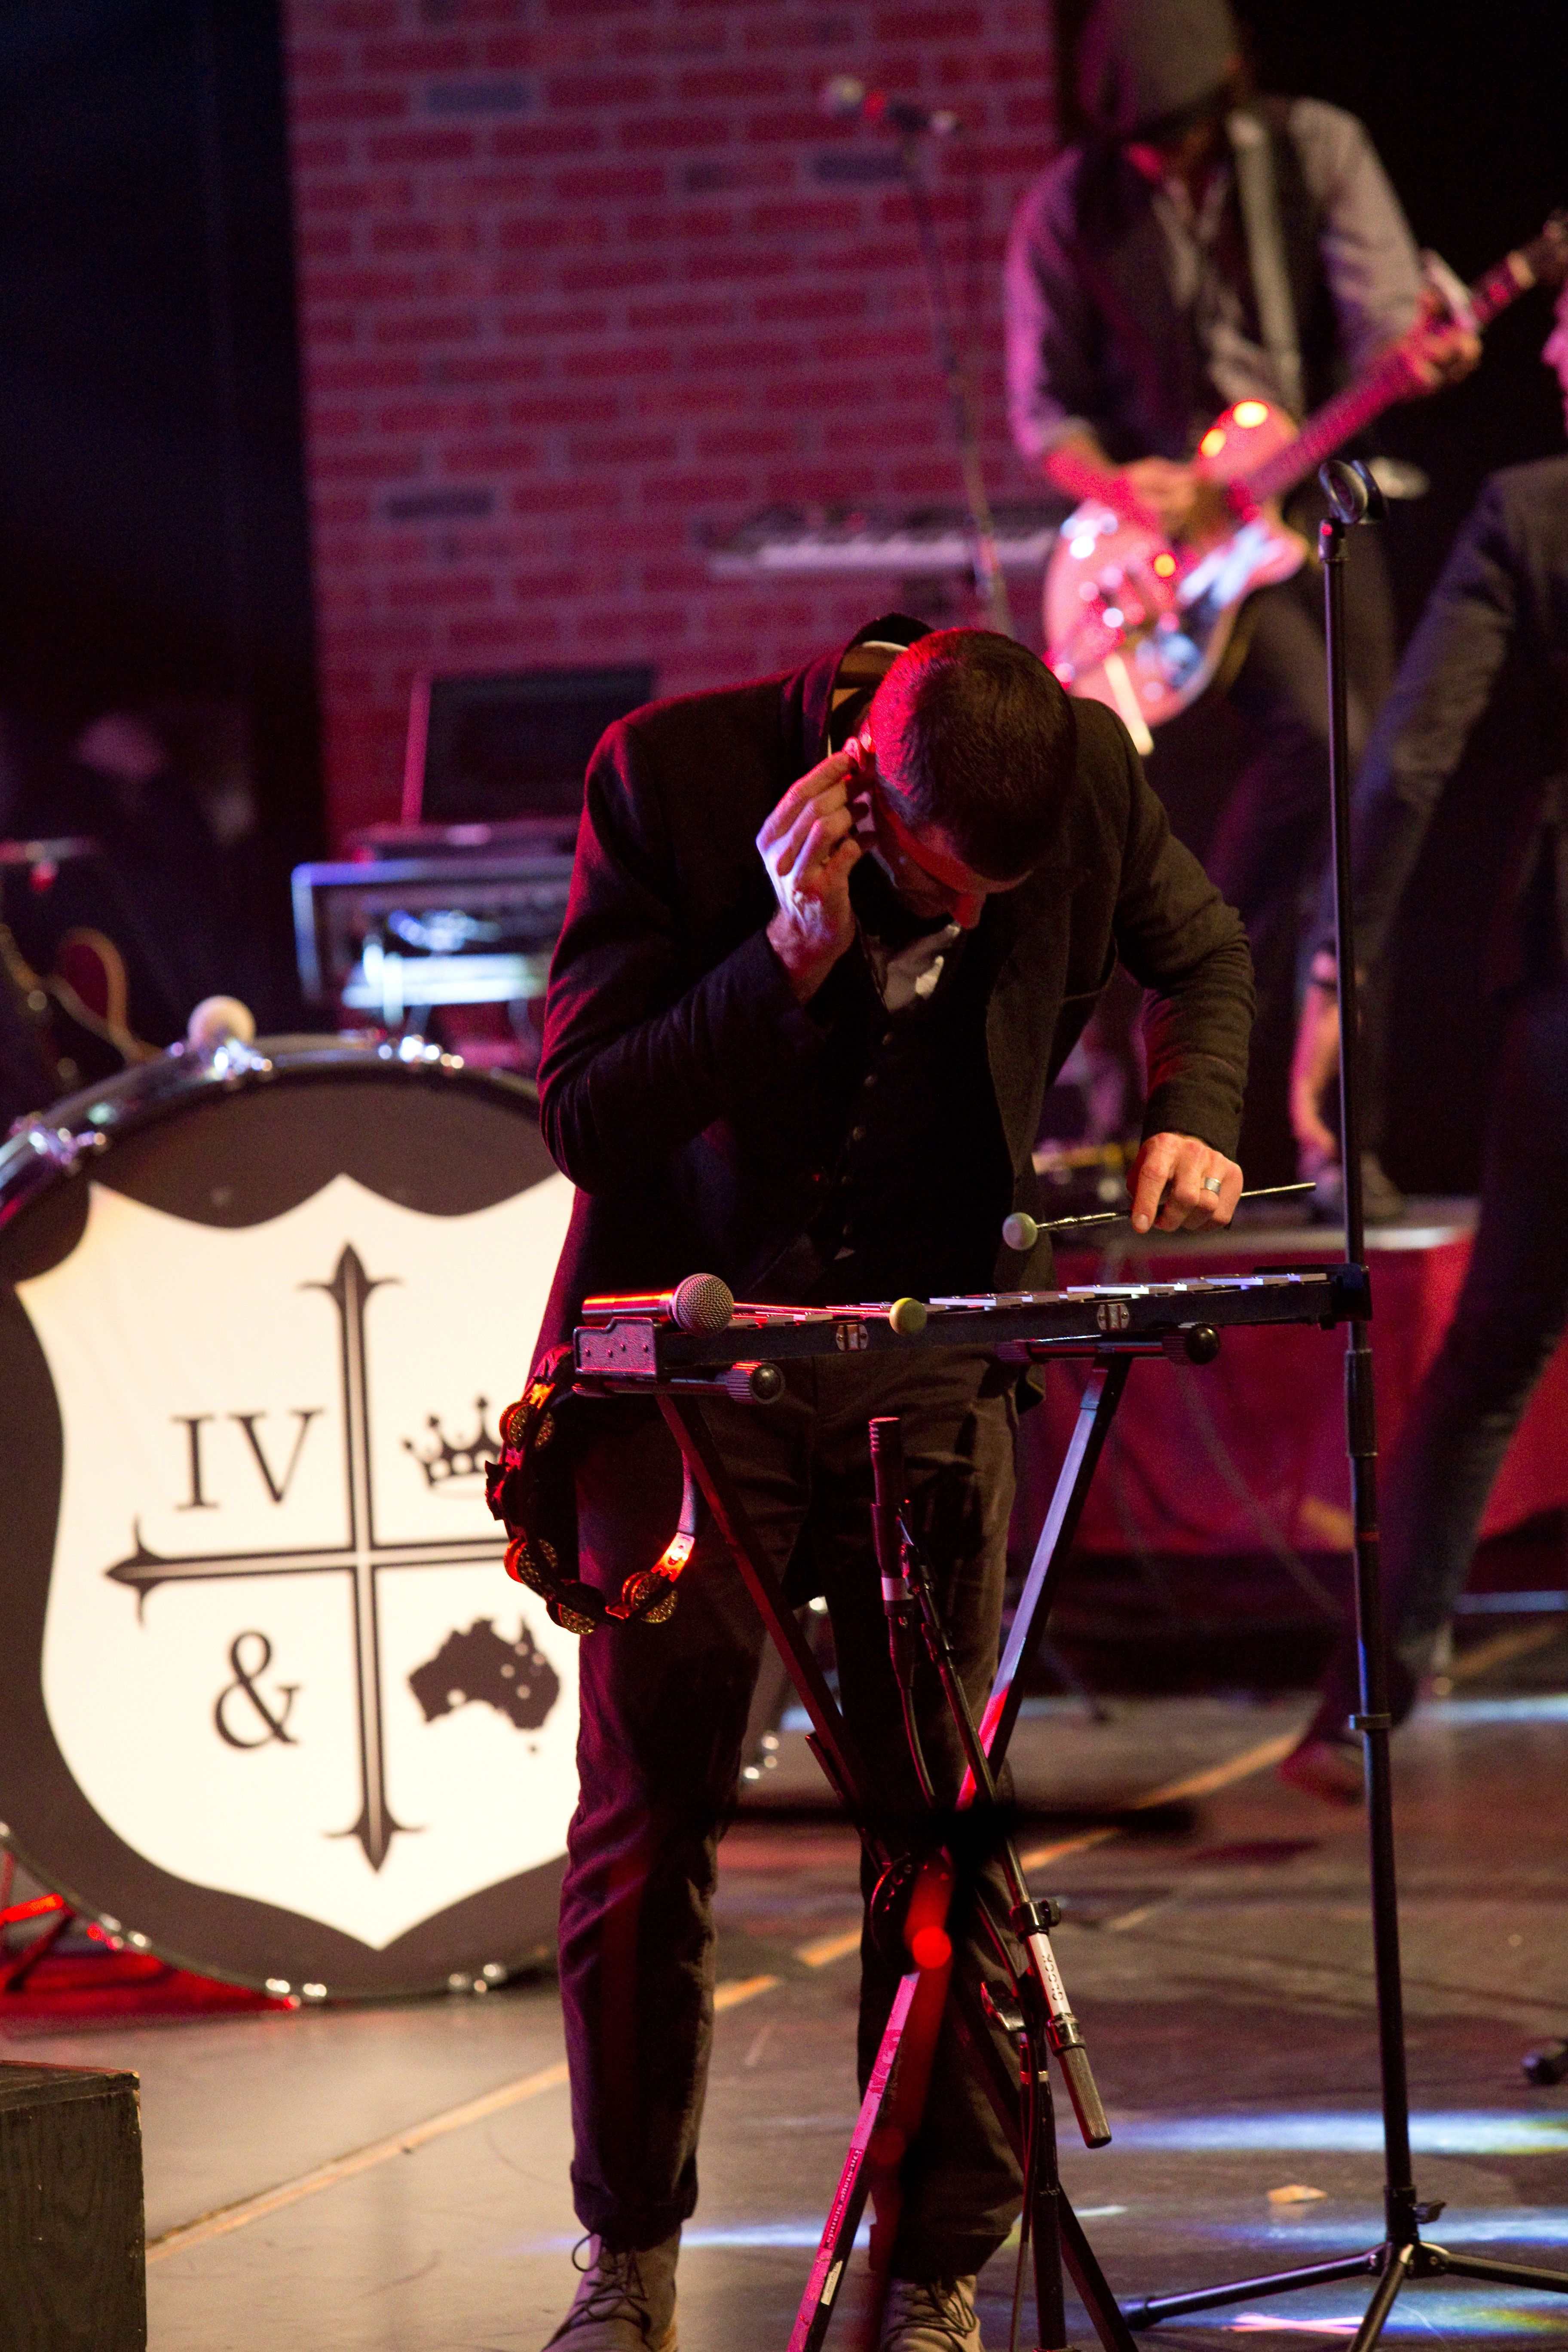 K Love Christmas 2019 Joel from for KING & COUNTRY on the glockenspiel in Indianapolis